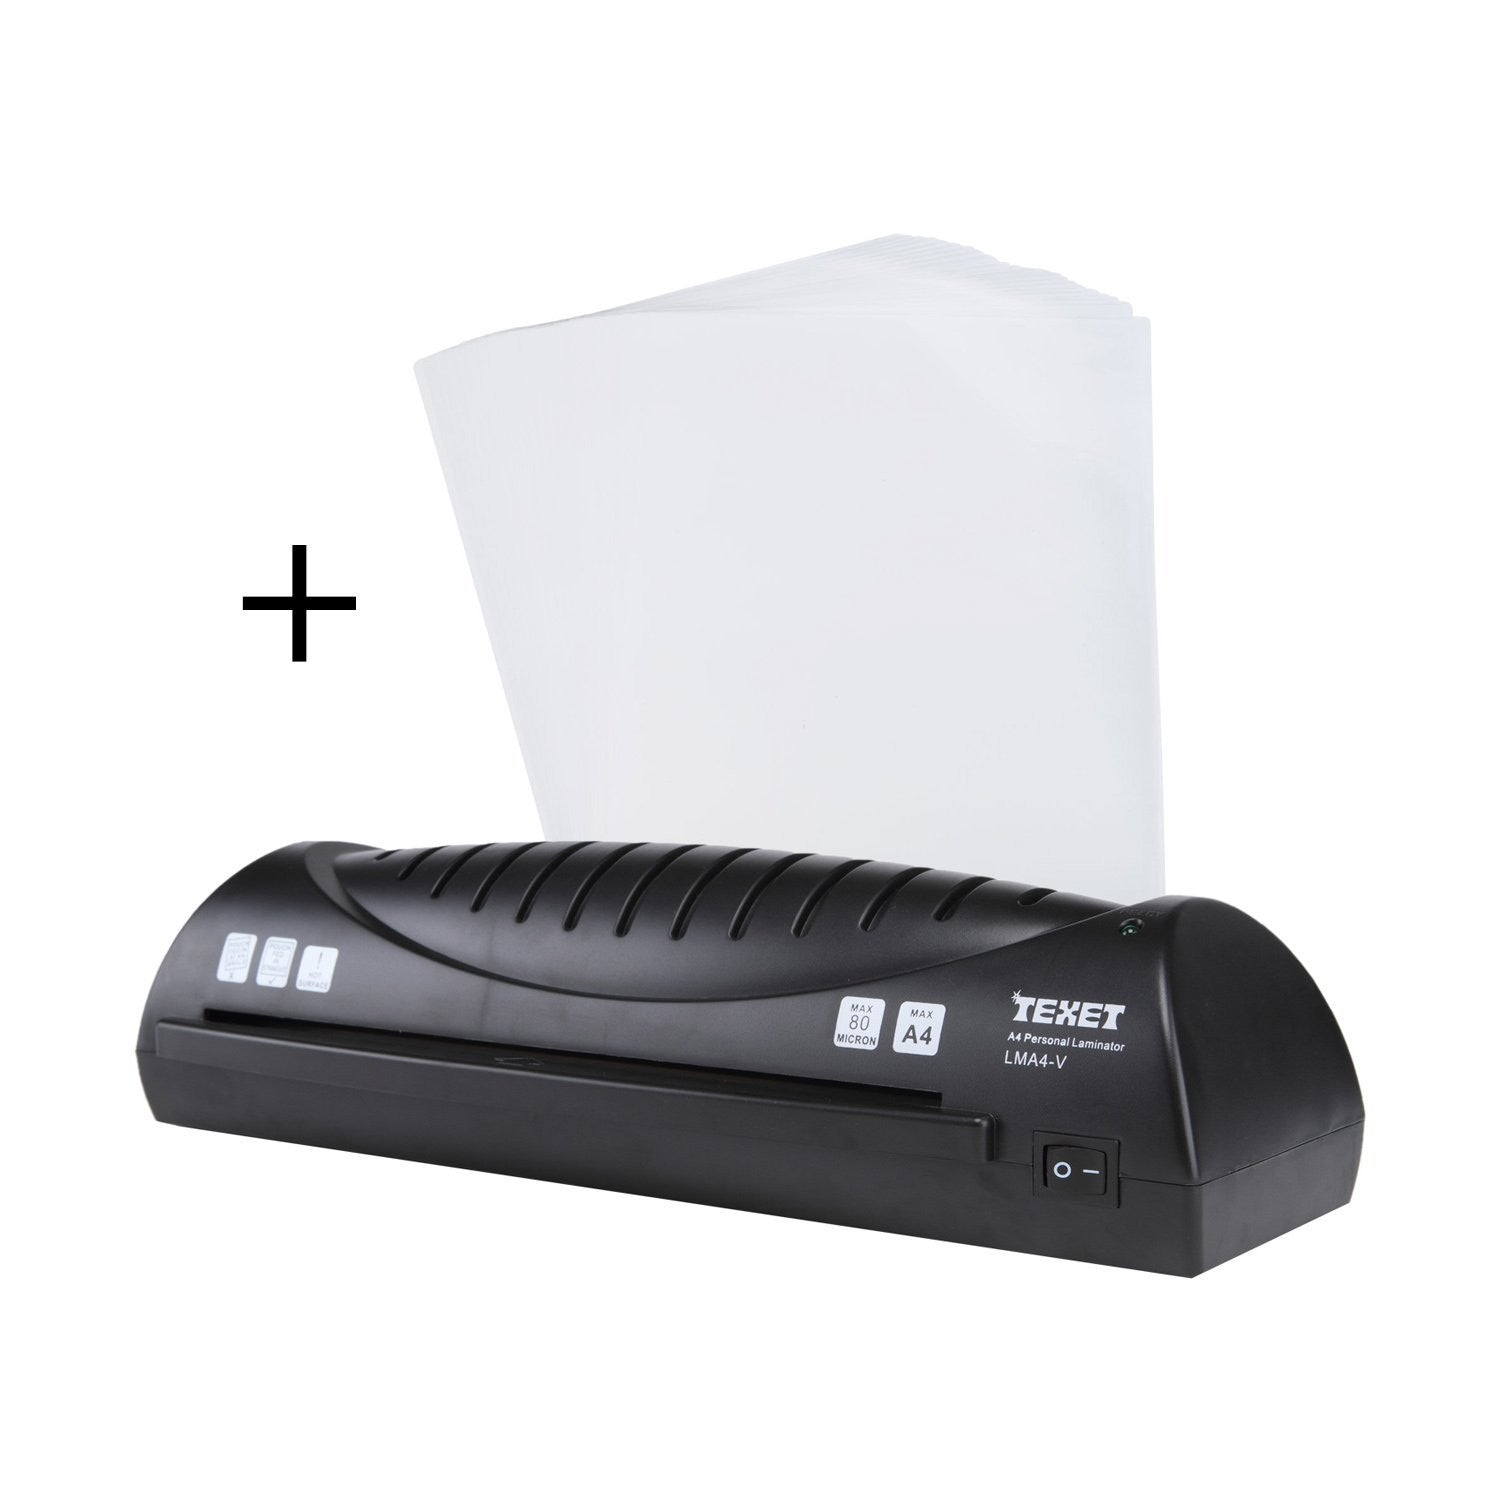 Texet A4 Lamination machine - Ideal for Photos ID, I-Card + Texet A4 pack of 25 laminating pouches - TEXET